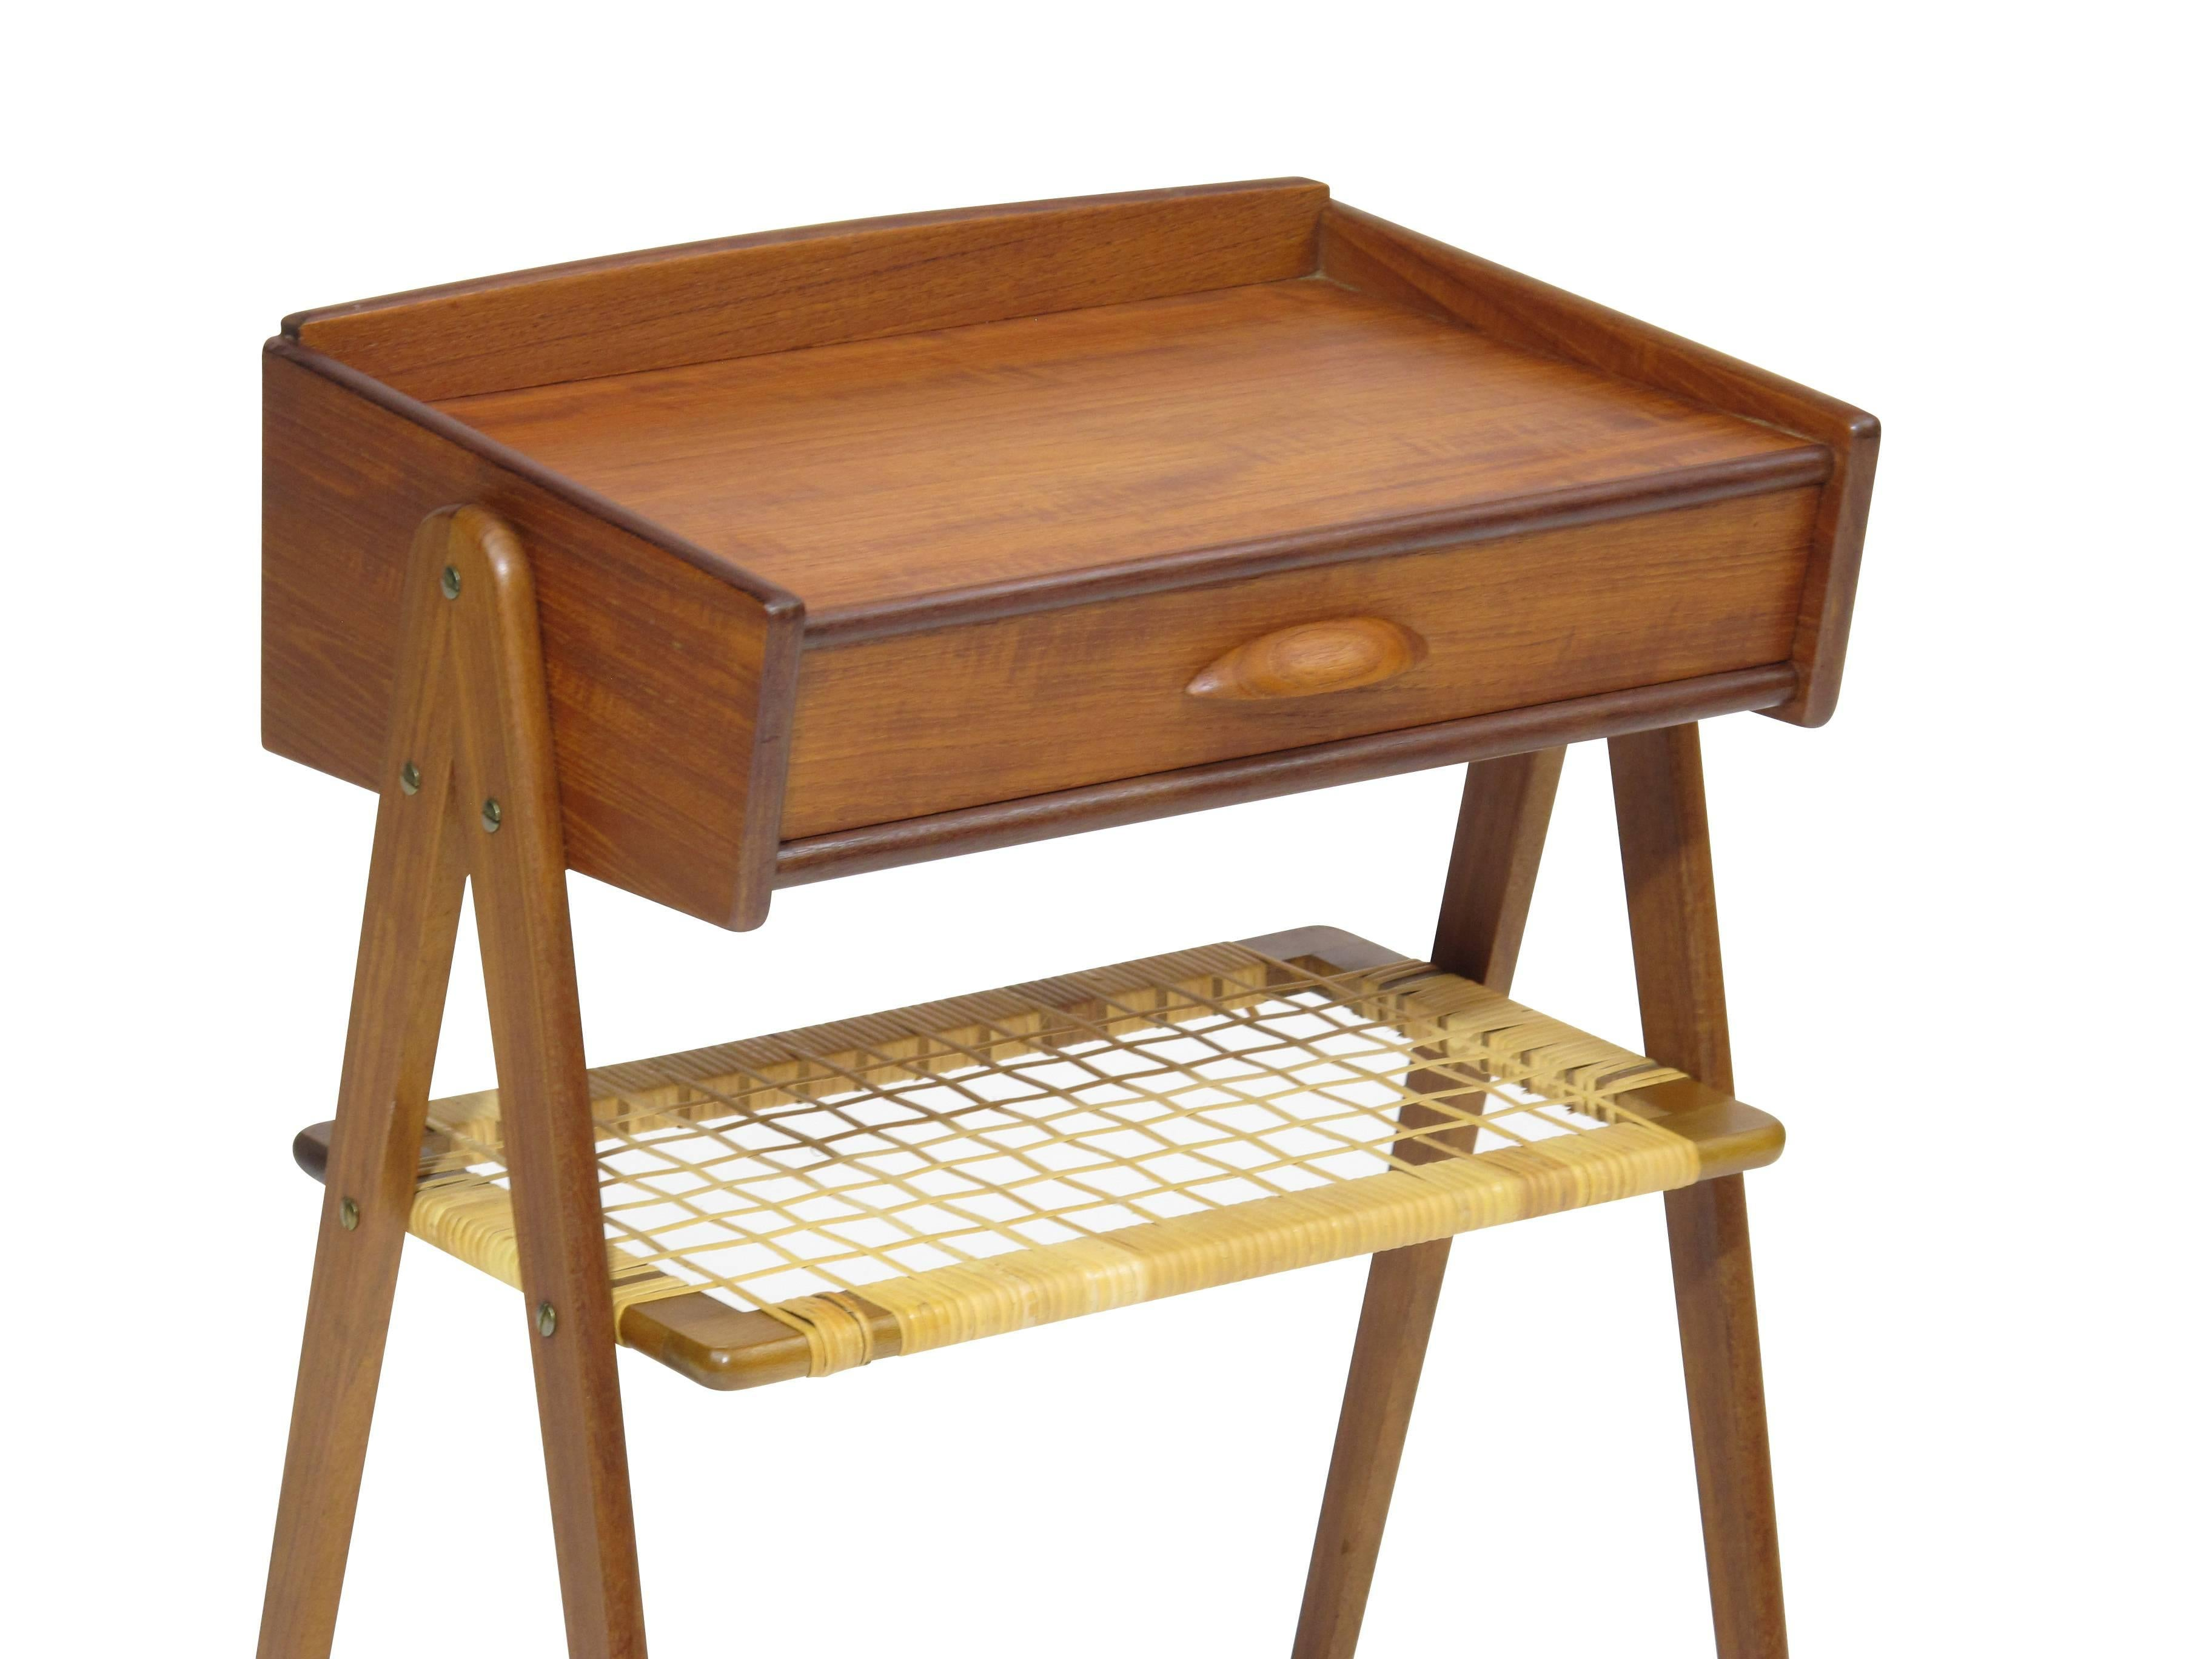 Danish Teak Side Table Nightstand With Woven Cane Shelf For Sale At - Teak side table with drawer